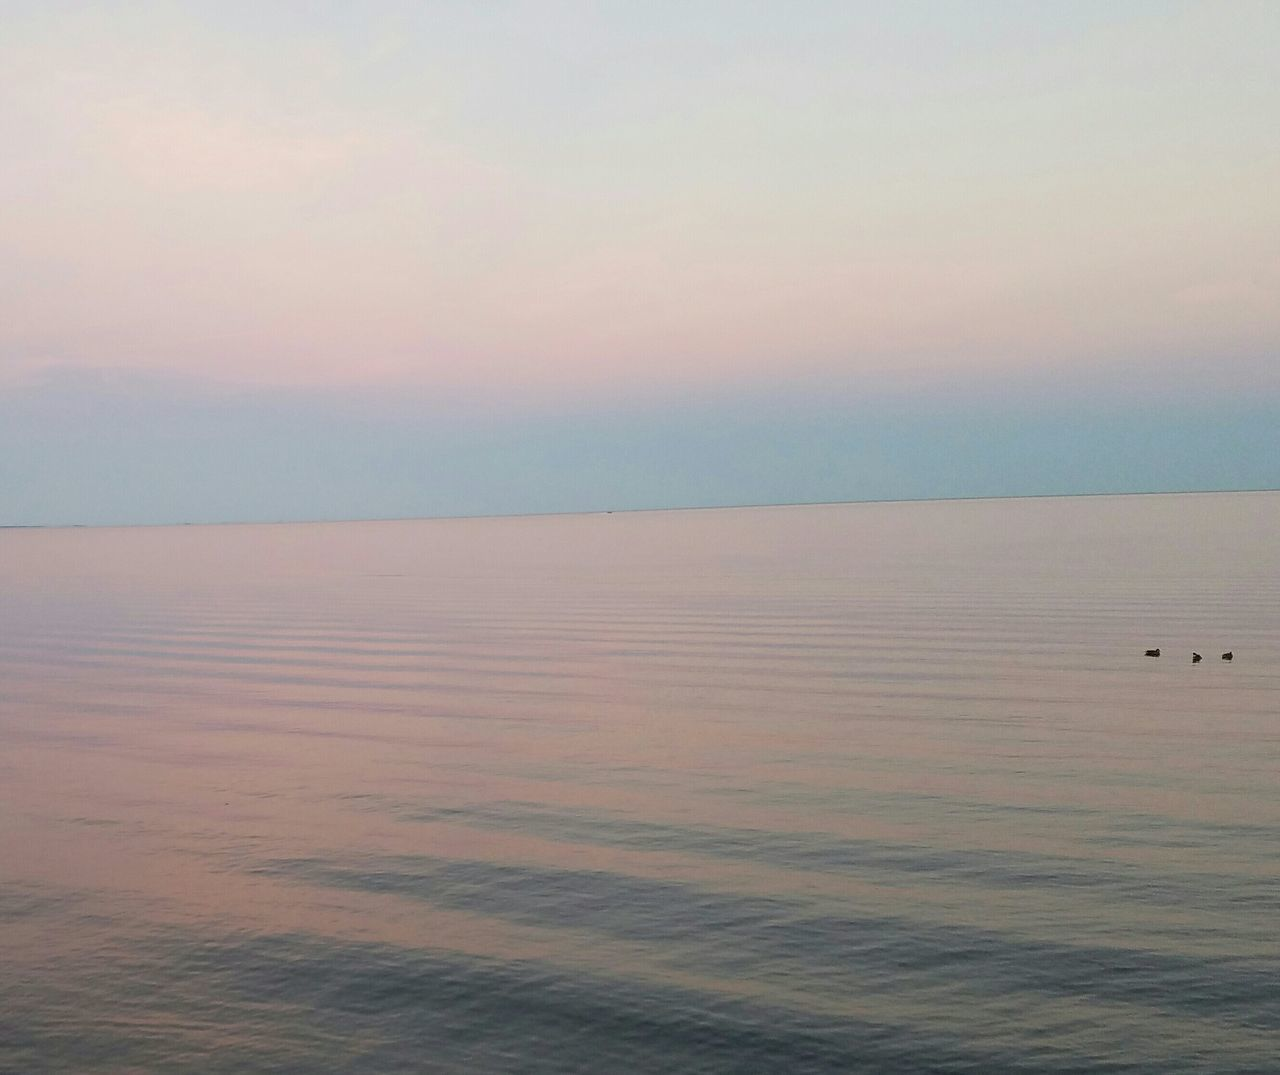 LakeMille Lacs Dusk On The Water Pastel Sky Calm Water Minnesota Lake Purple And Pink Sky Sky Reflected In Water